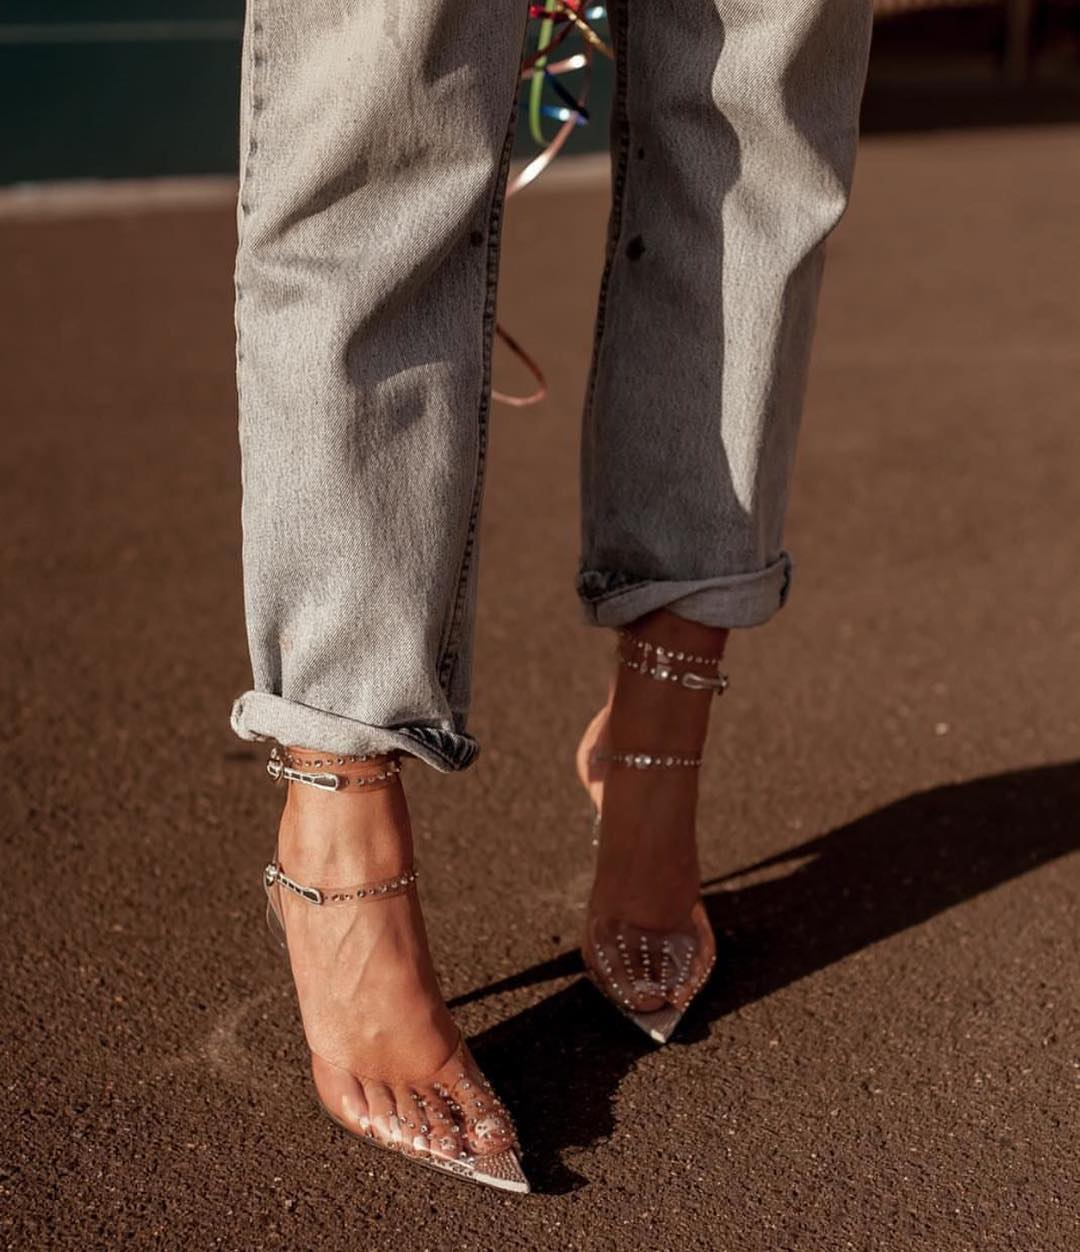 Clear Pointy Toe Heels And Cuffed Boyfriend Jeans For Spring 2021